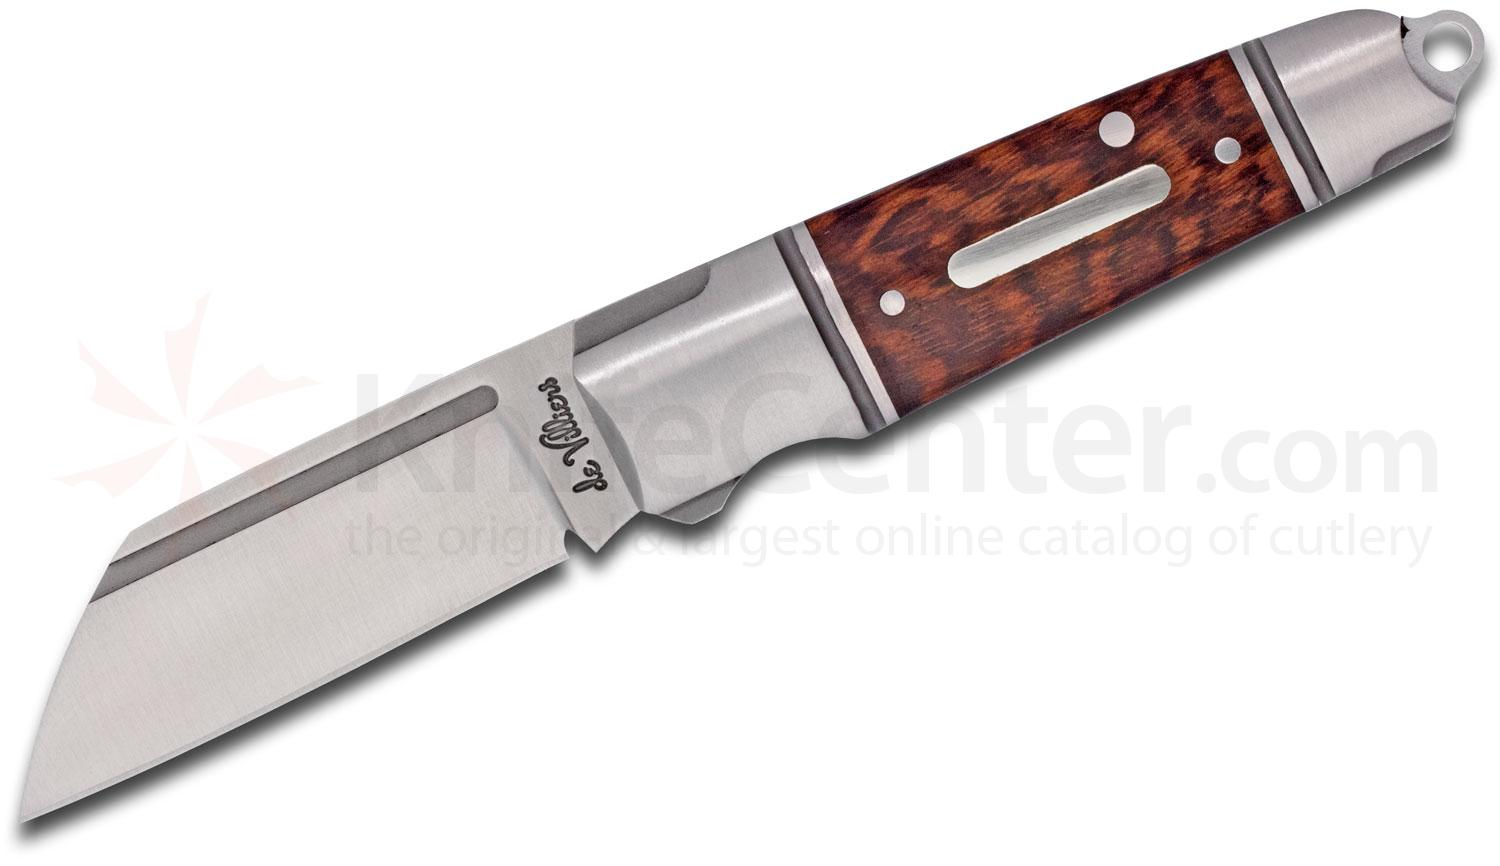 Andre De Villiers Knives Mini Pocket Butcher Slipjoint Folding Knife 2.125 inch D2 Wharncliffe Blade, Stainless Steel Handles with Rosewood Inlays